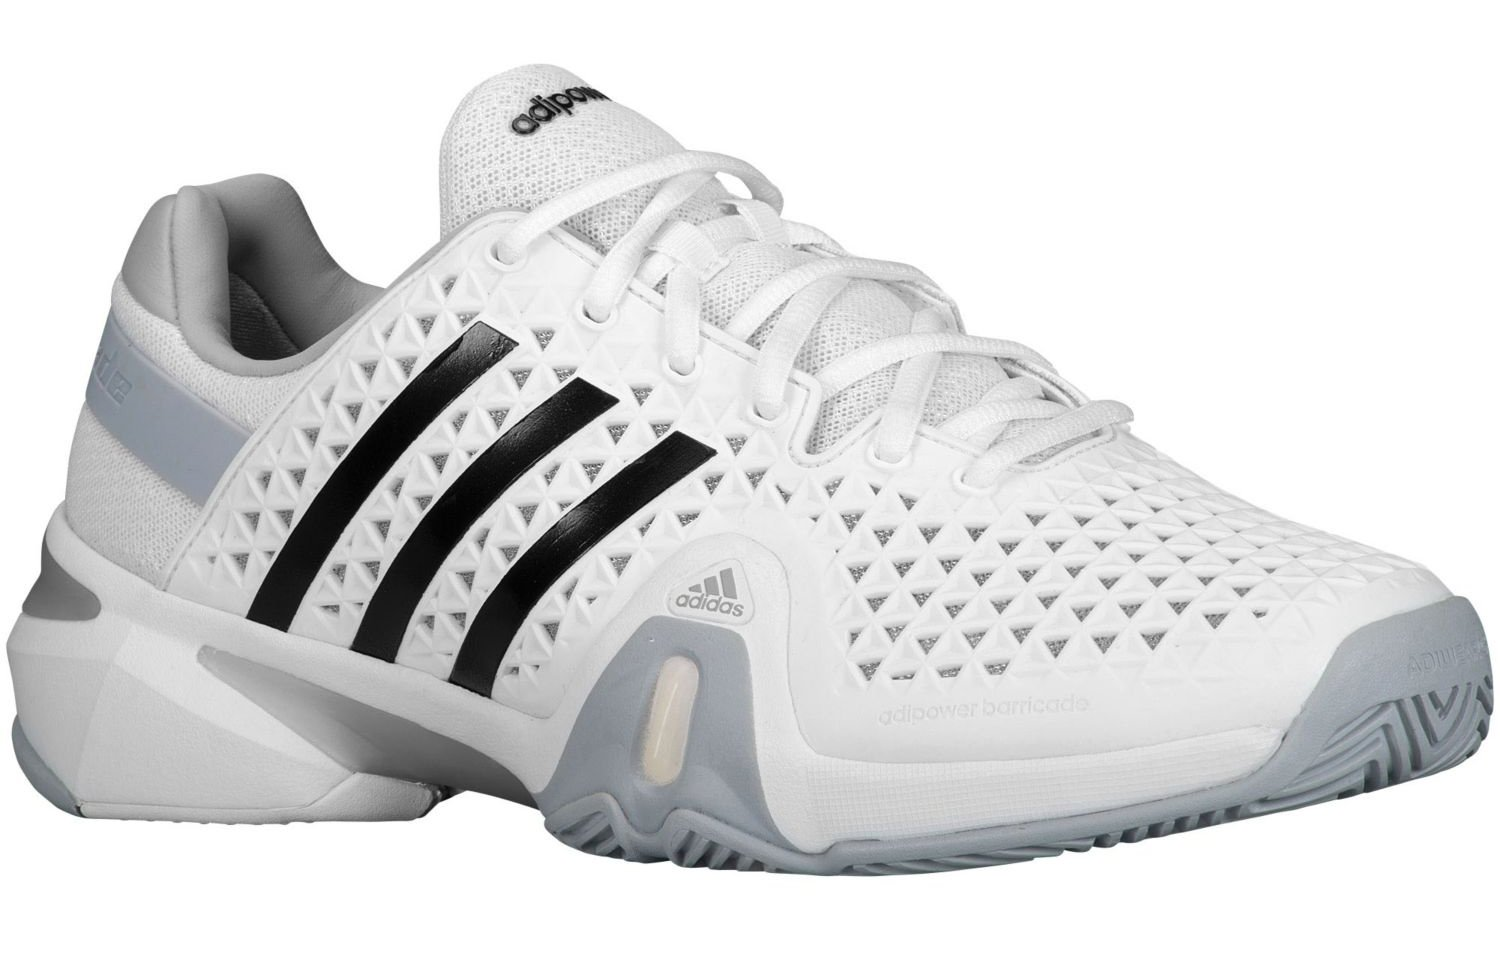 Adipower Barricade 8+ Mens' Tennis Shoe White/Silver/Grey B00HMBJNFS 11.5 D(M) US|White